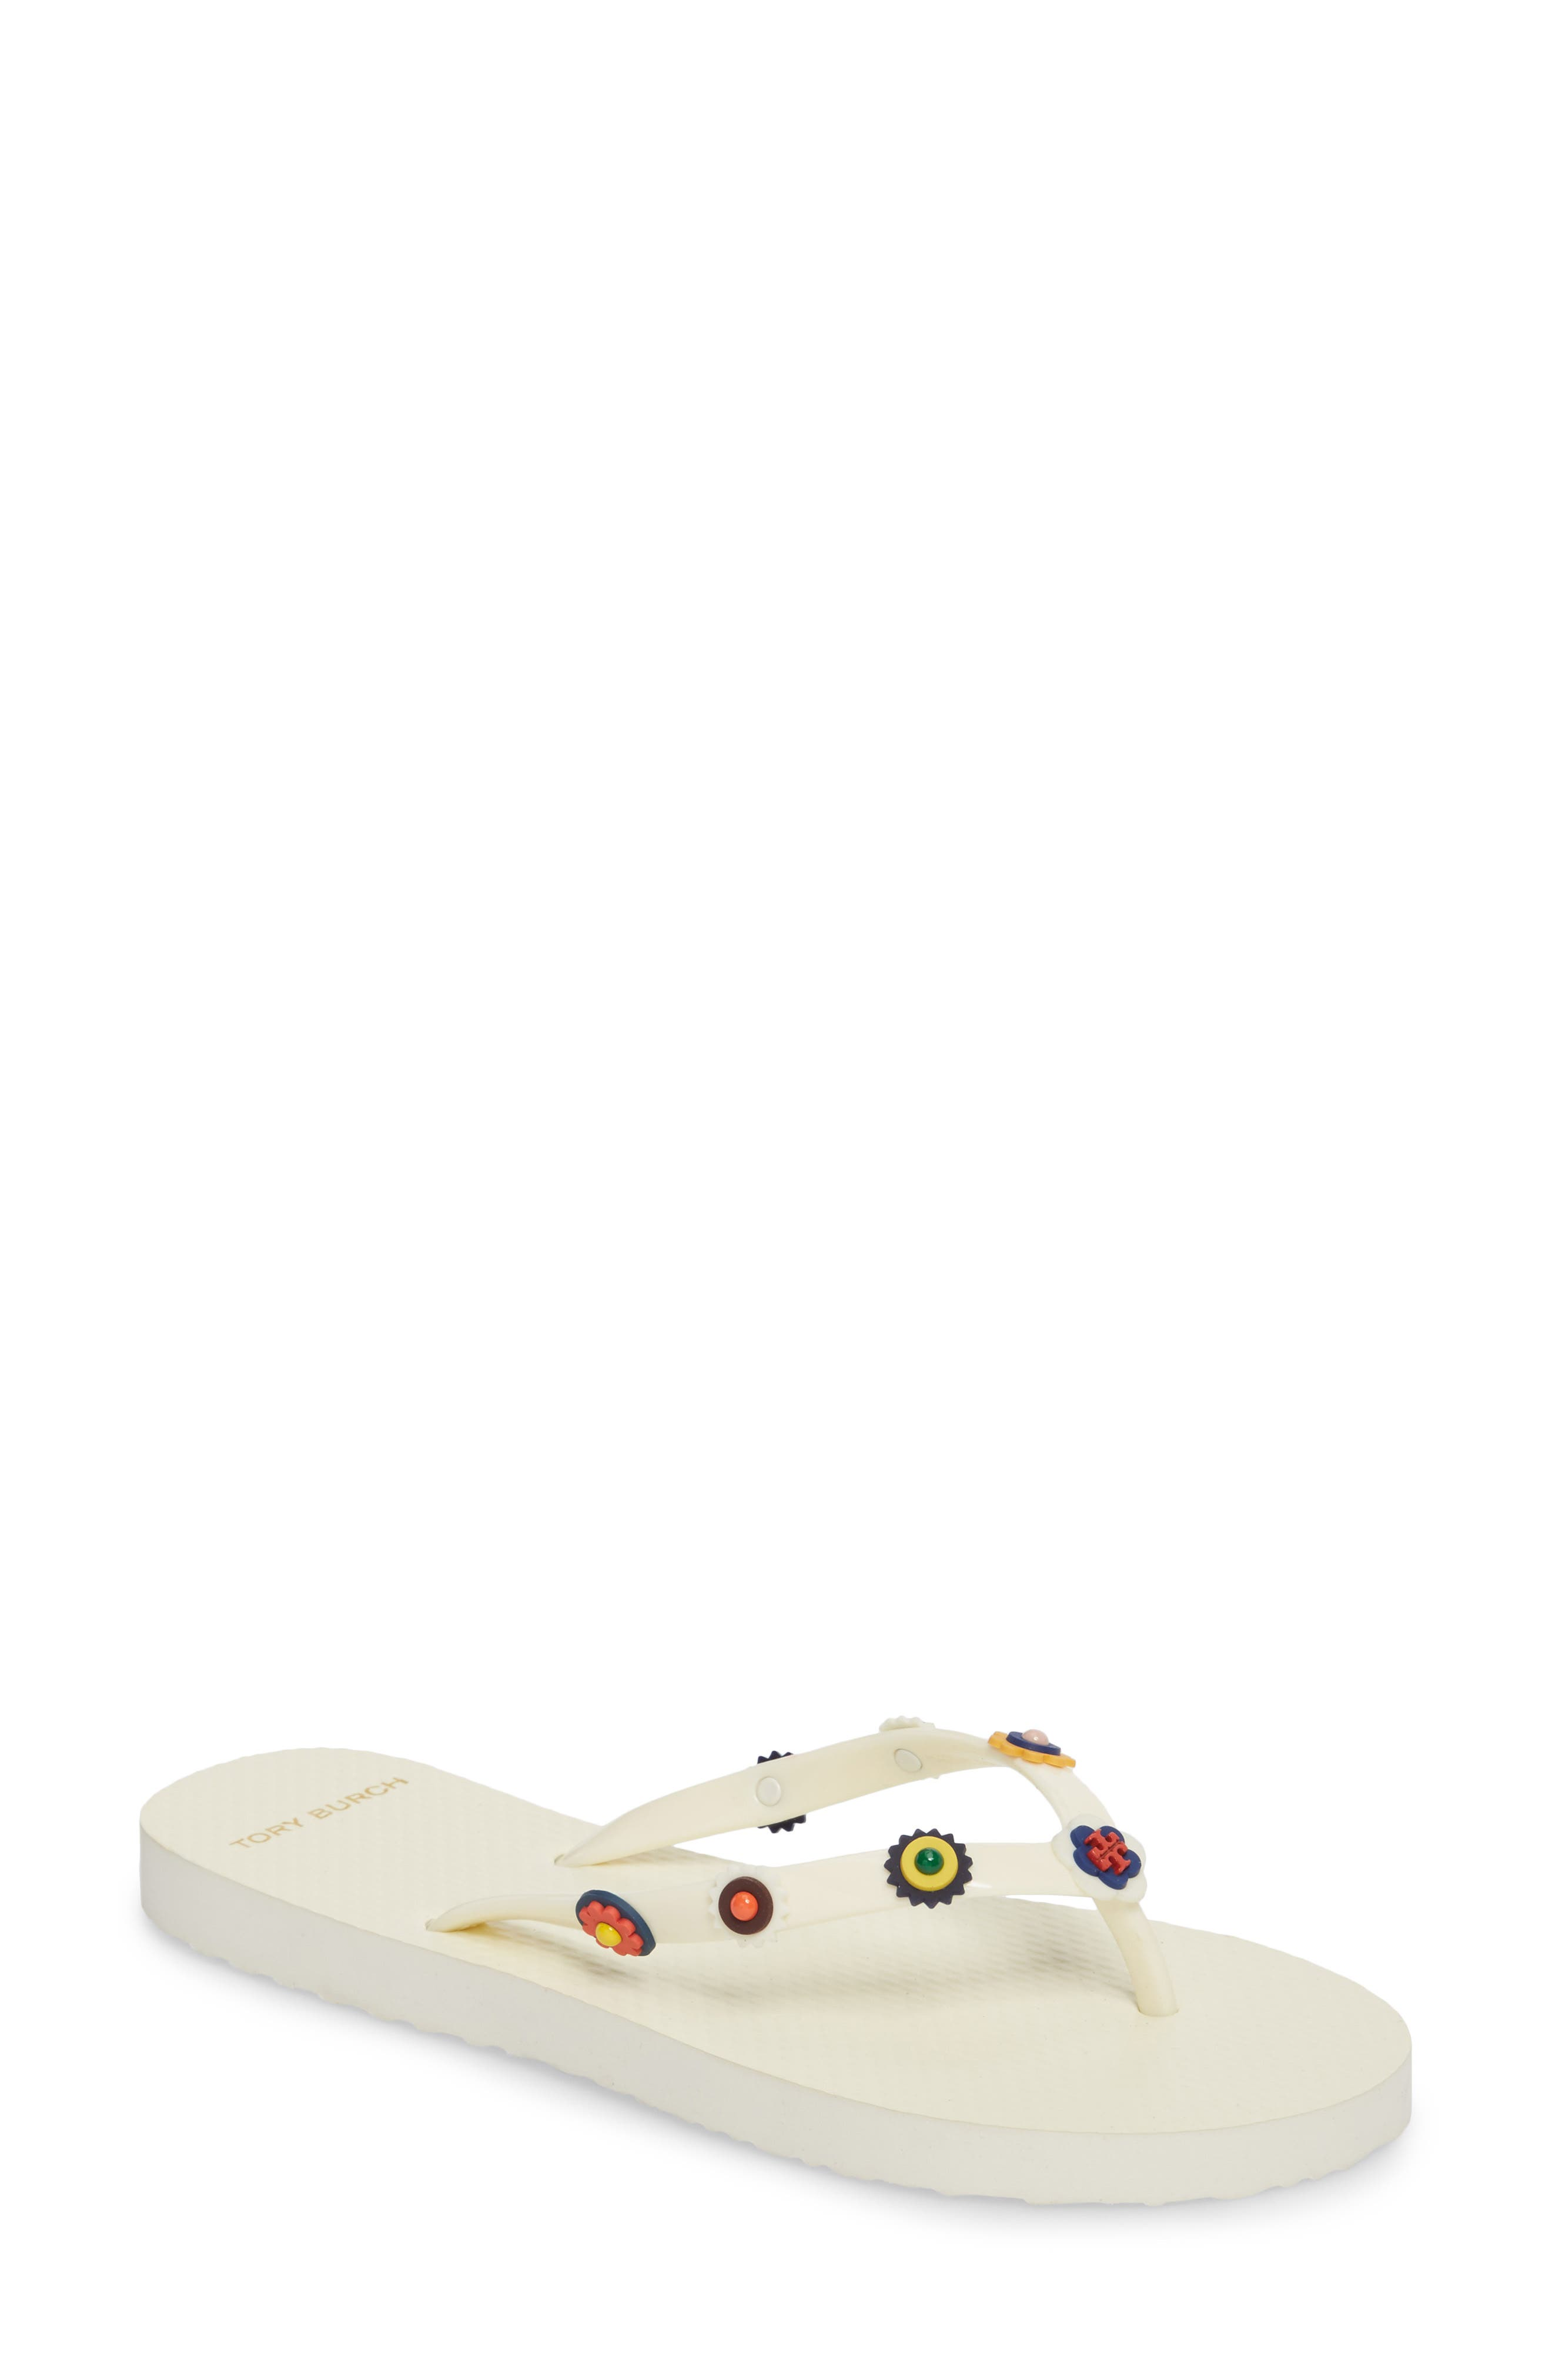 Marguerite 2 Studded Flip Flop,                             Main thumbnail 1, color,                             Perfect Ivory